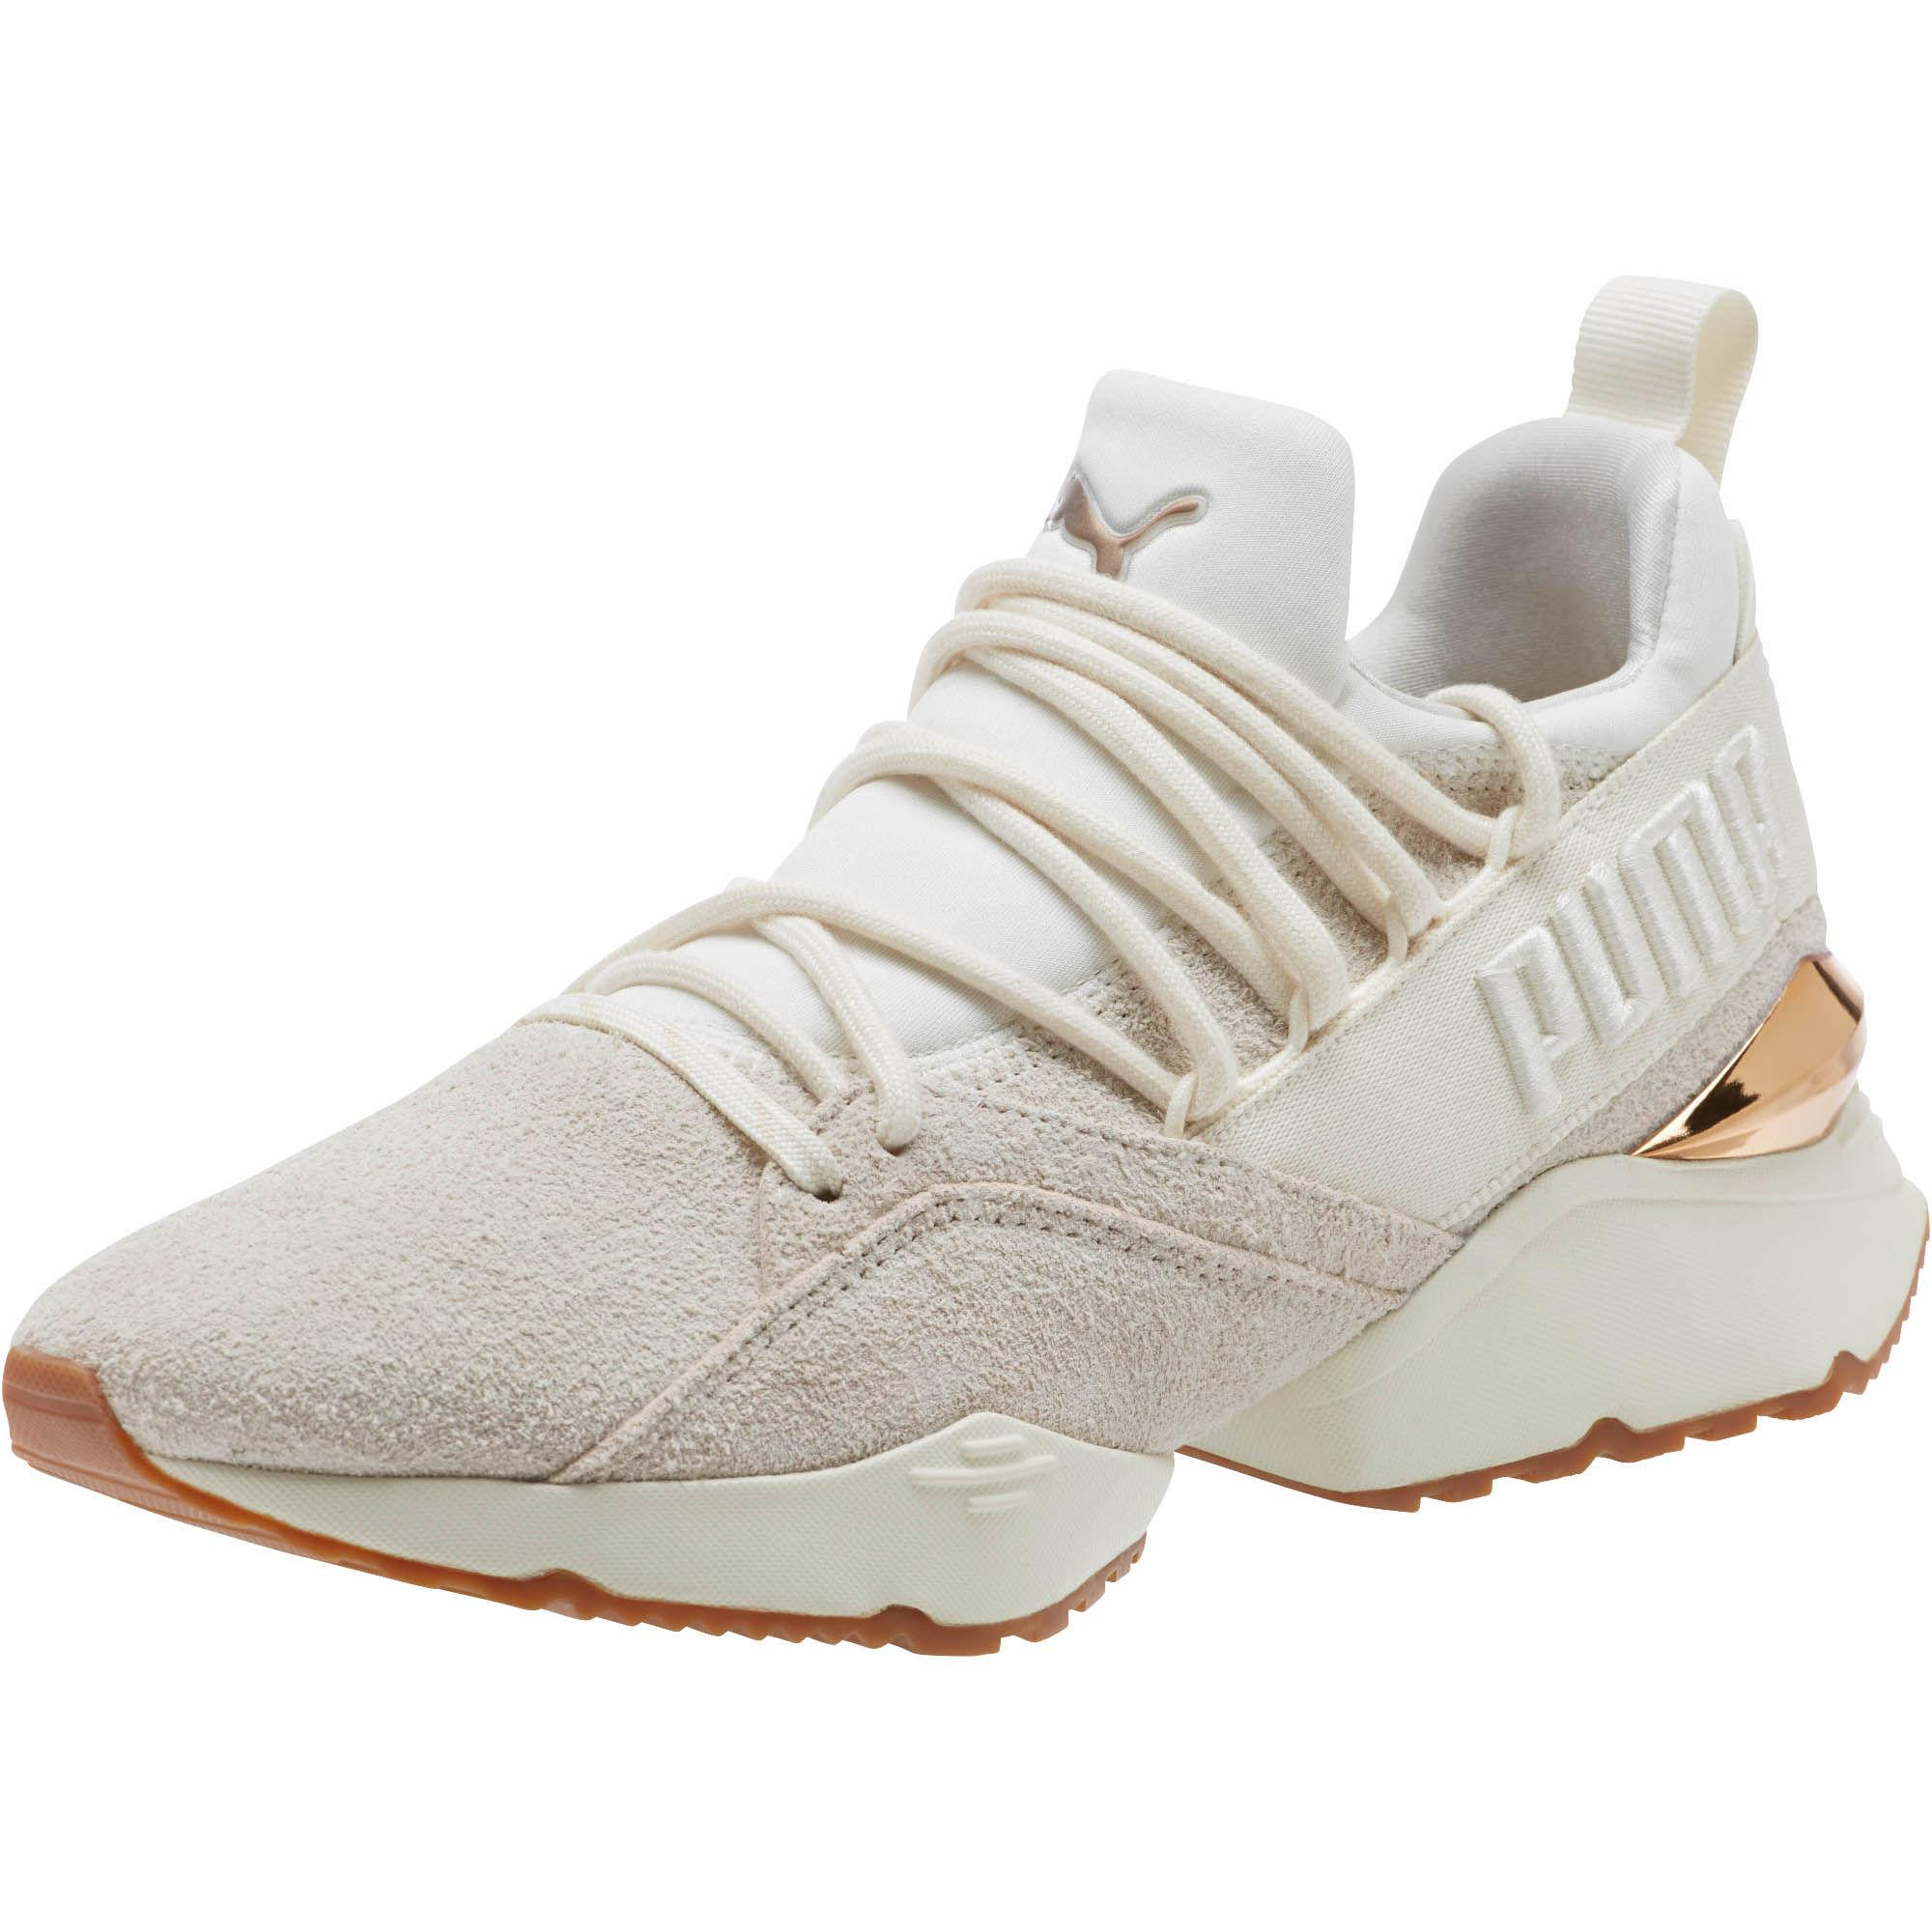 Lyst - PUMA Muse Maia Util Women s Sneakers 05dc7f959